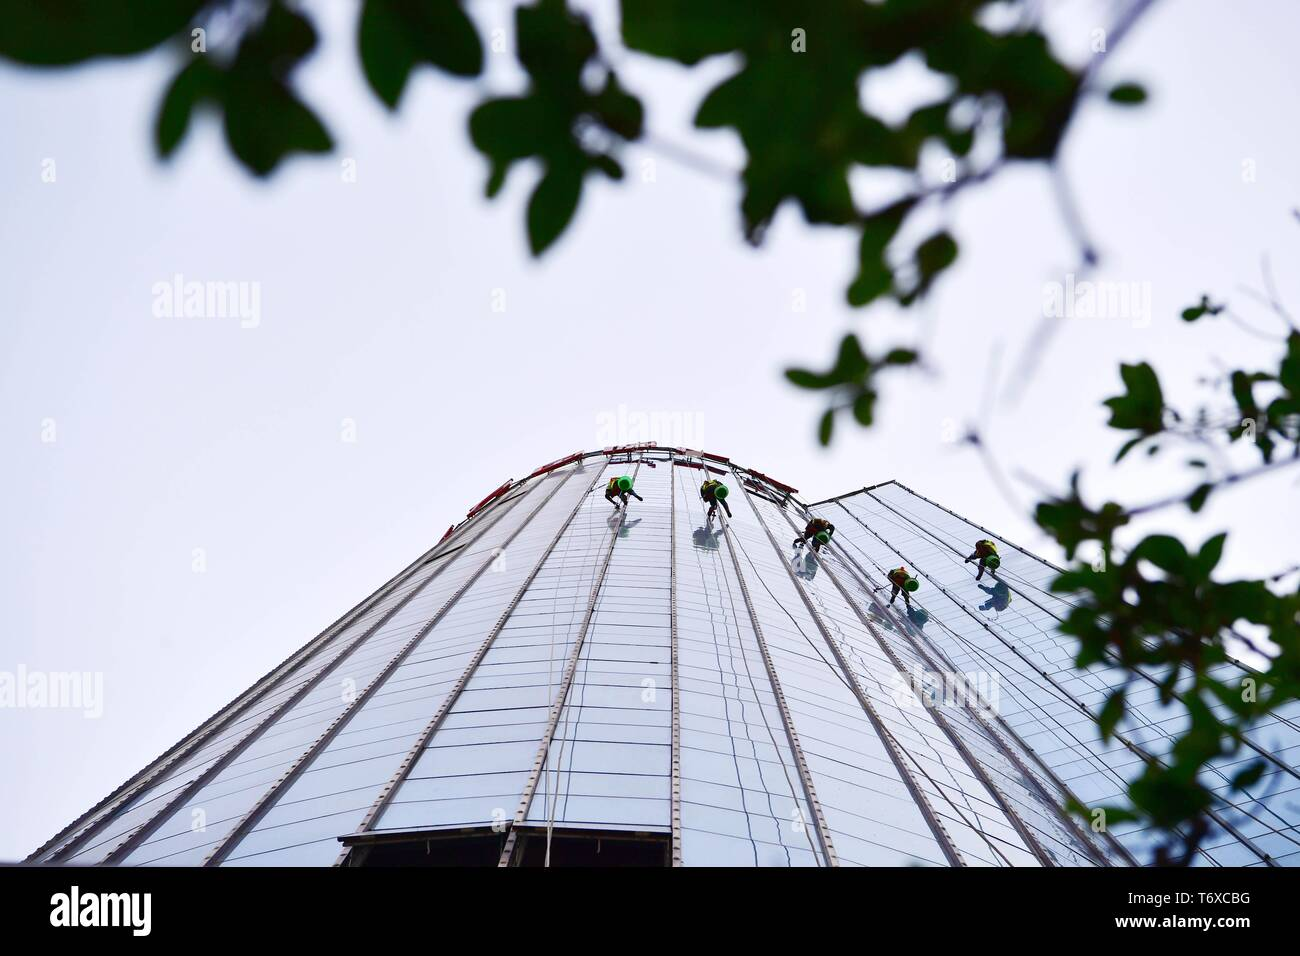 Zhengzhou, China's Henan Province. 2nd May, 2019. Workers clean the glass curtain wall of a skyscraper in Zhengzhou, capital of central China's Henan Province, May 2, 2019. Credit: Feng Dapeng/Xinhua/Alamy Live News Stock Photo